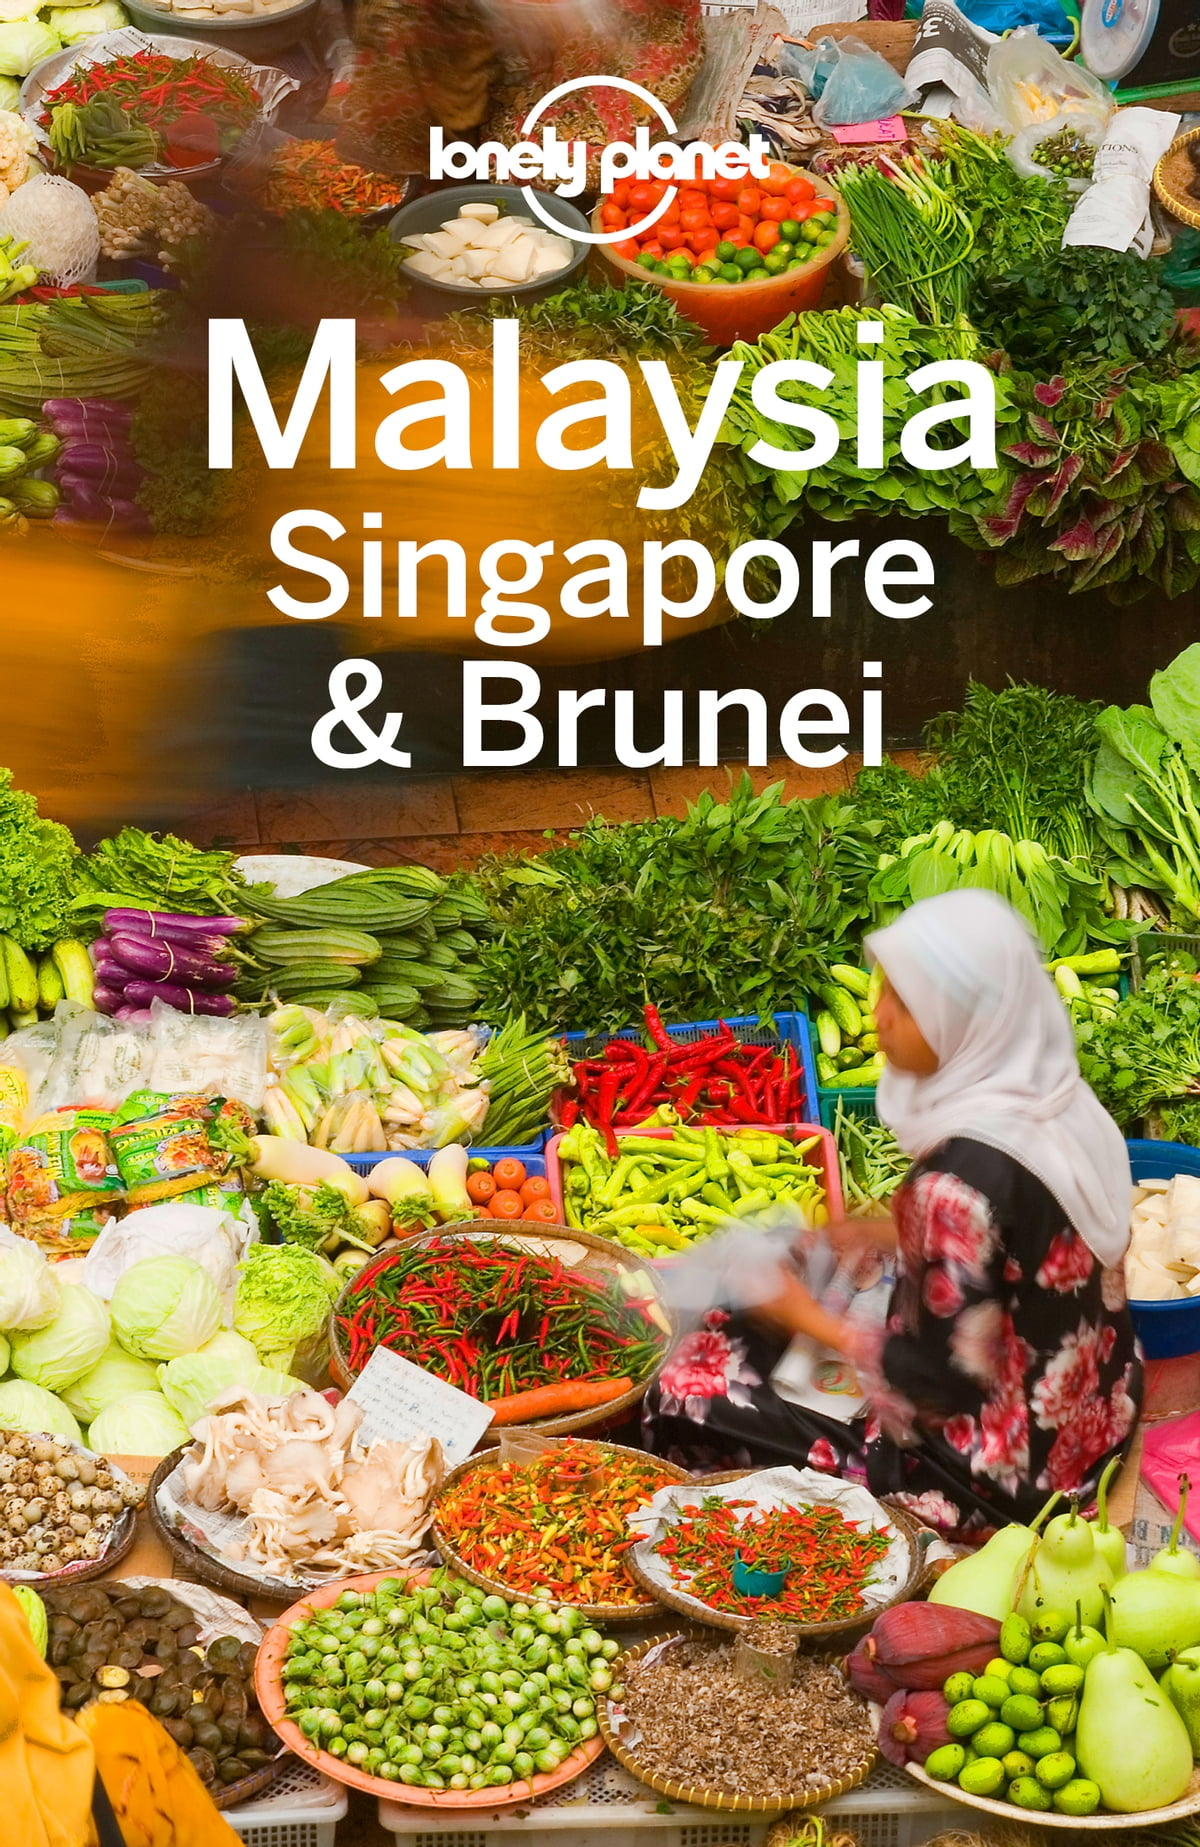 Lonely Planet Malaysia Singapore & Brunei Ebook By Lonely Planet   9781760341626  Rakuten Kobo